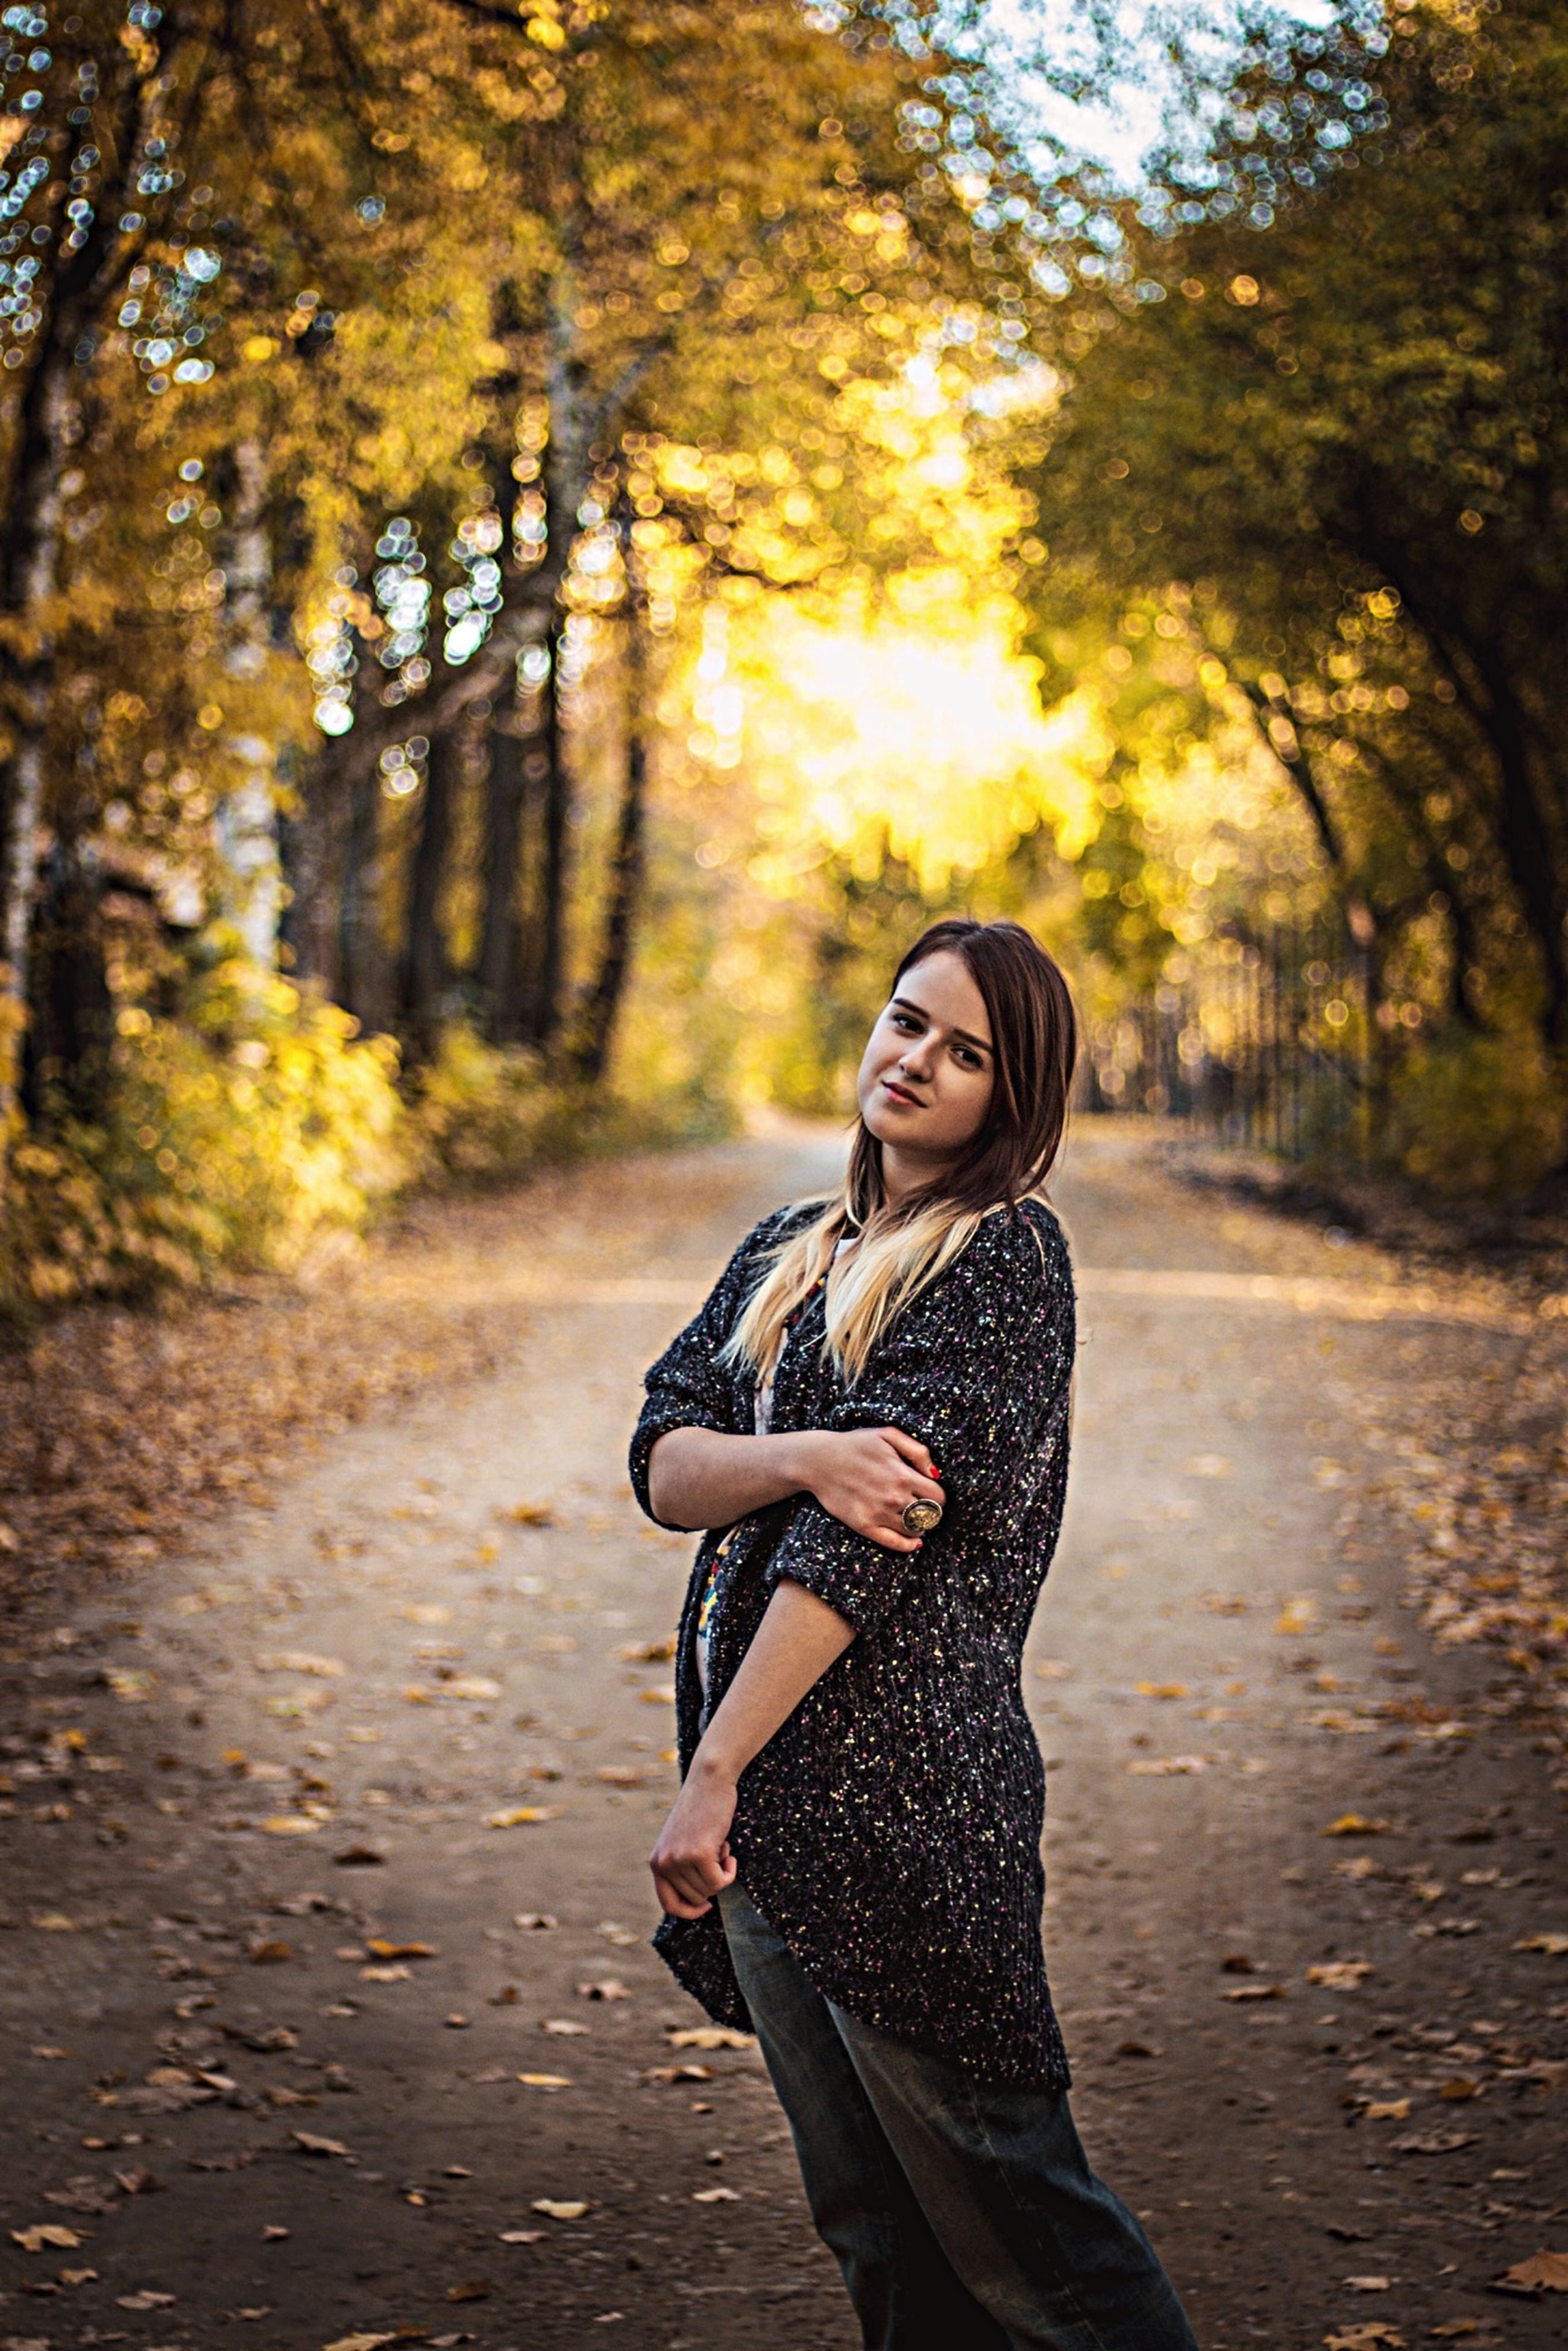 tree, lifestyles, young adult, leisure activity, road, transportation, casual clothing, young women, focus on foreground, person, front view, full length, forest, street, outdoors, sunlight, holding, standing